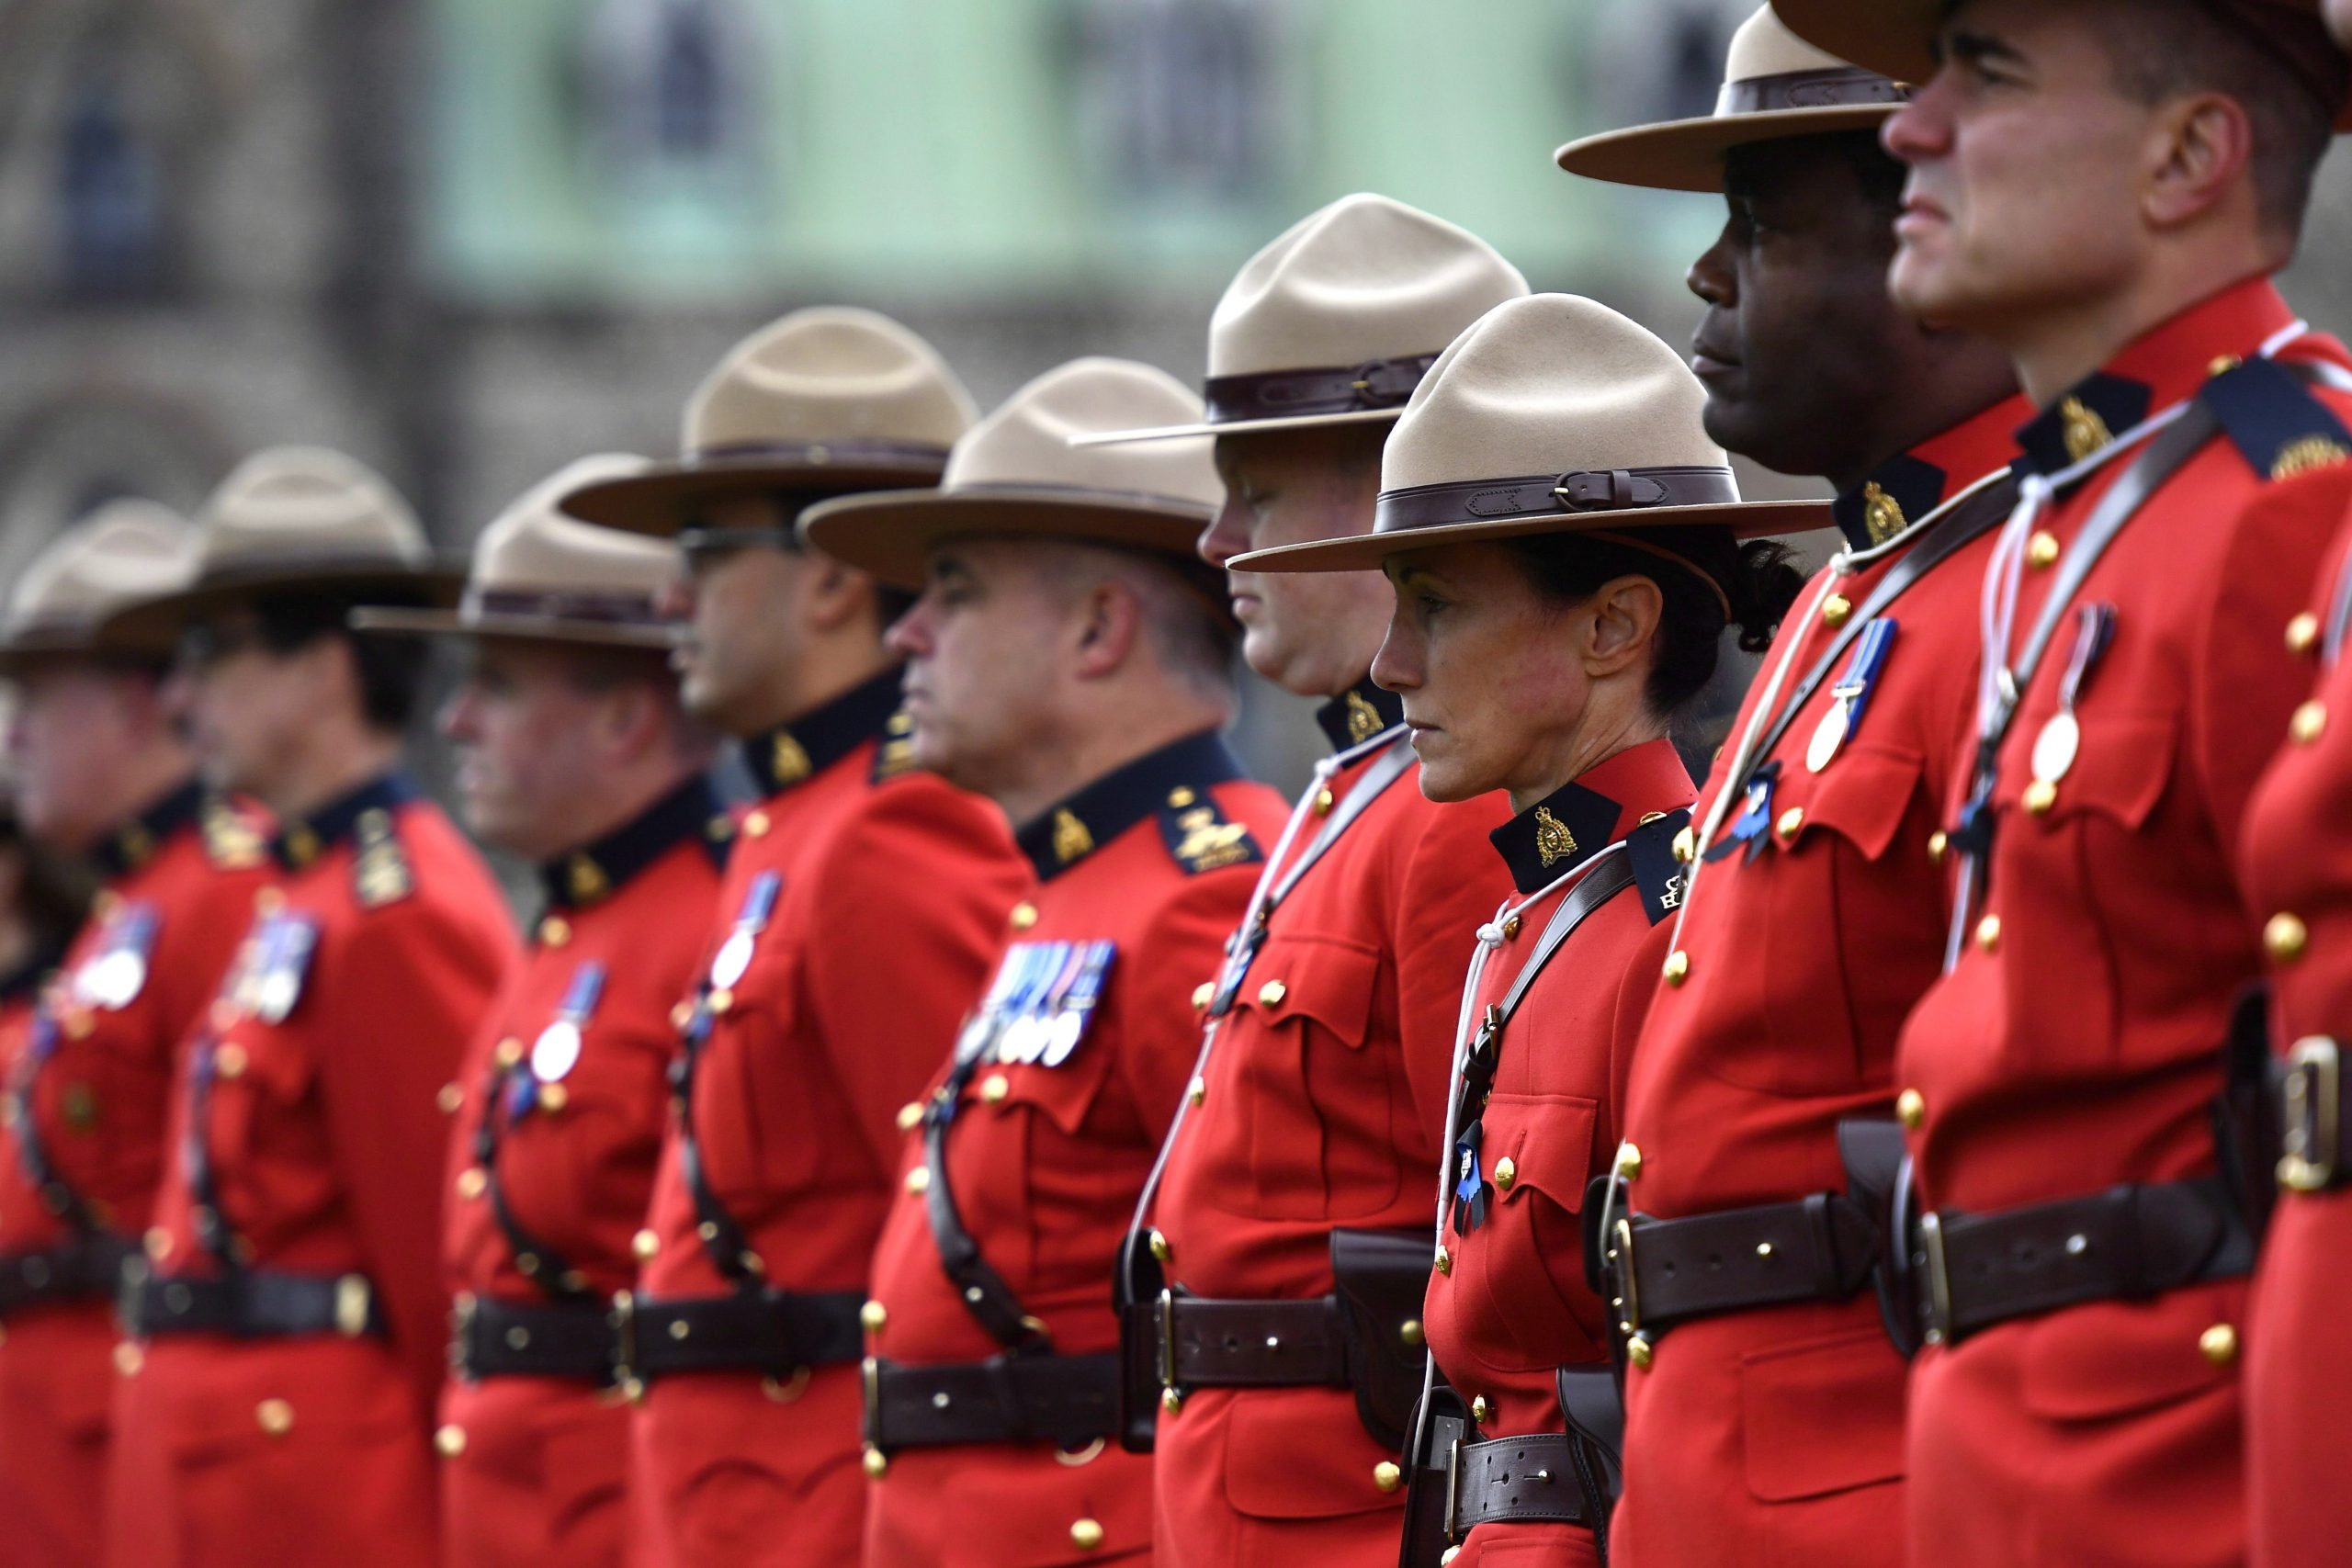 The Royal Canadian Mounted Police will reform the Entrance Examination for Diversity – RCI